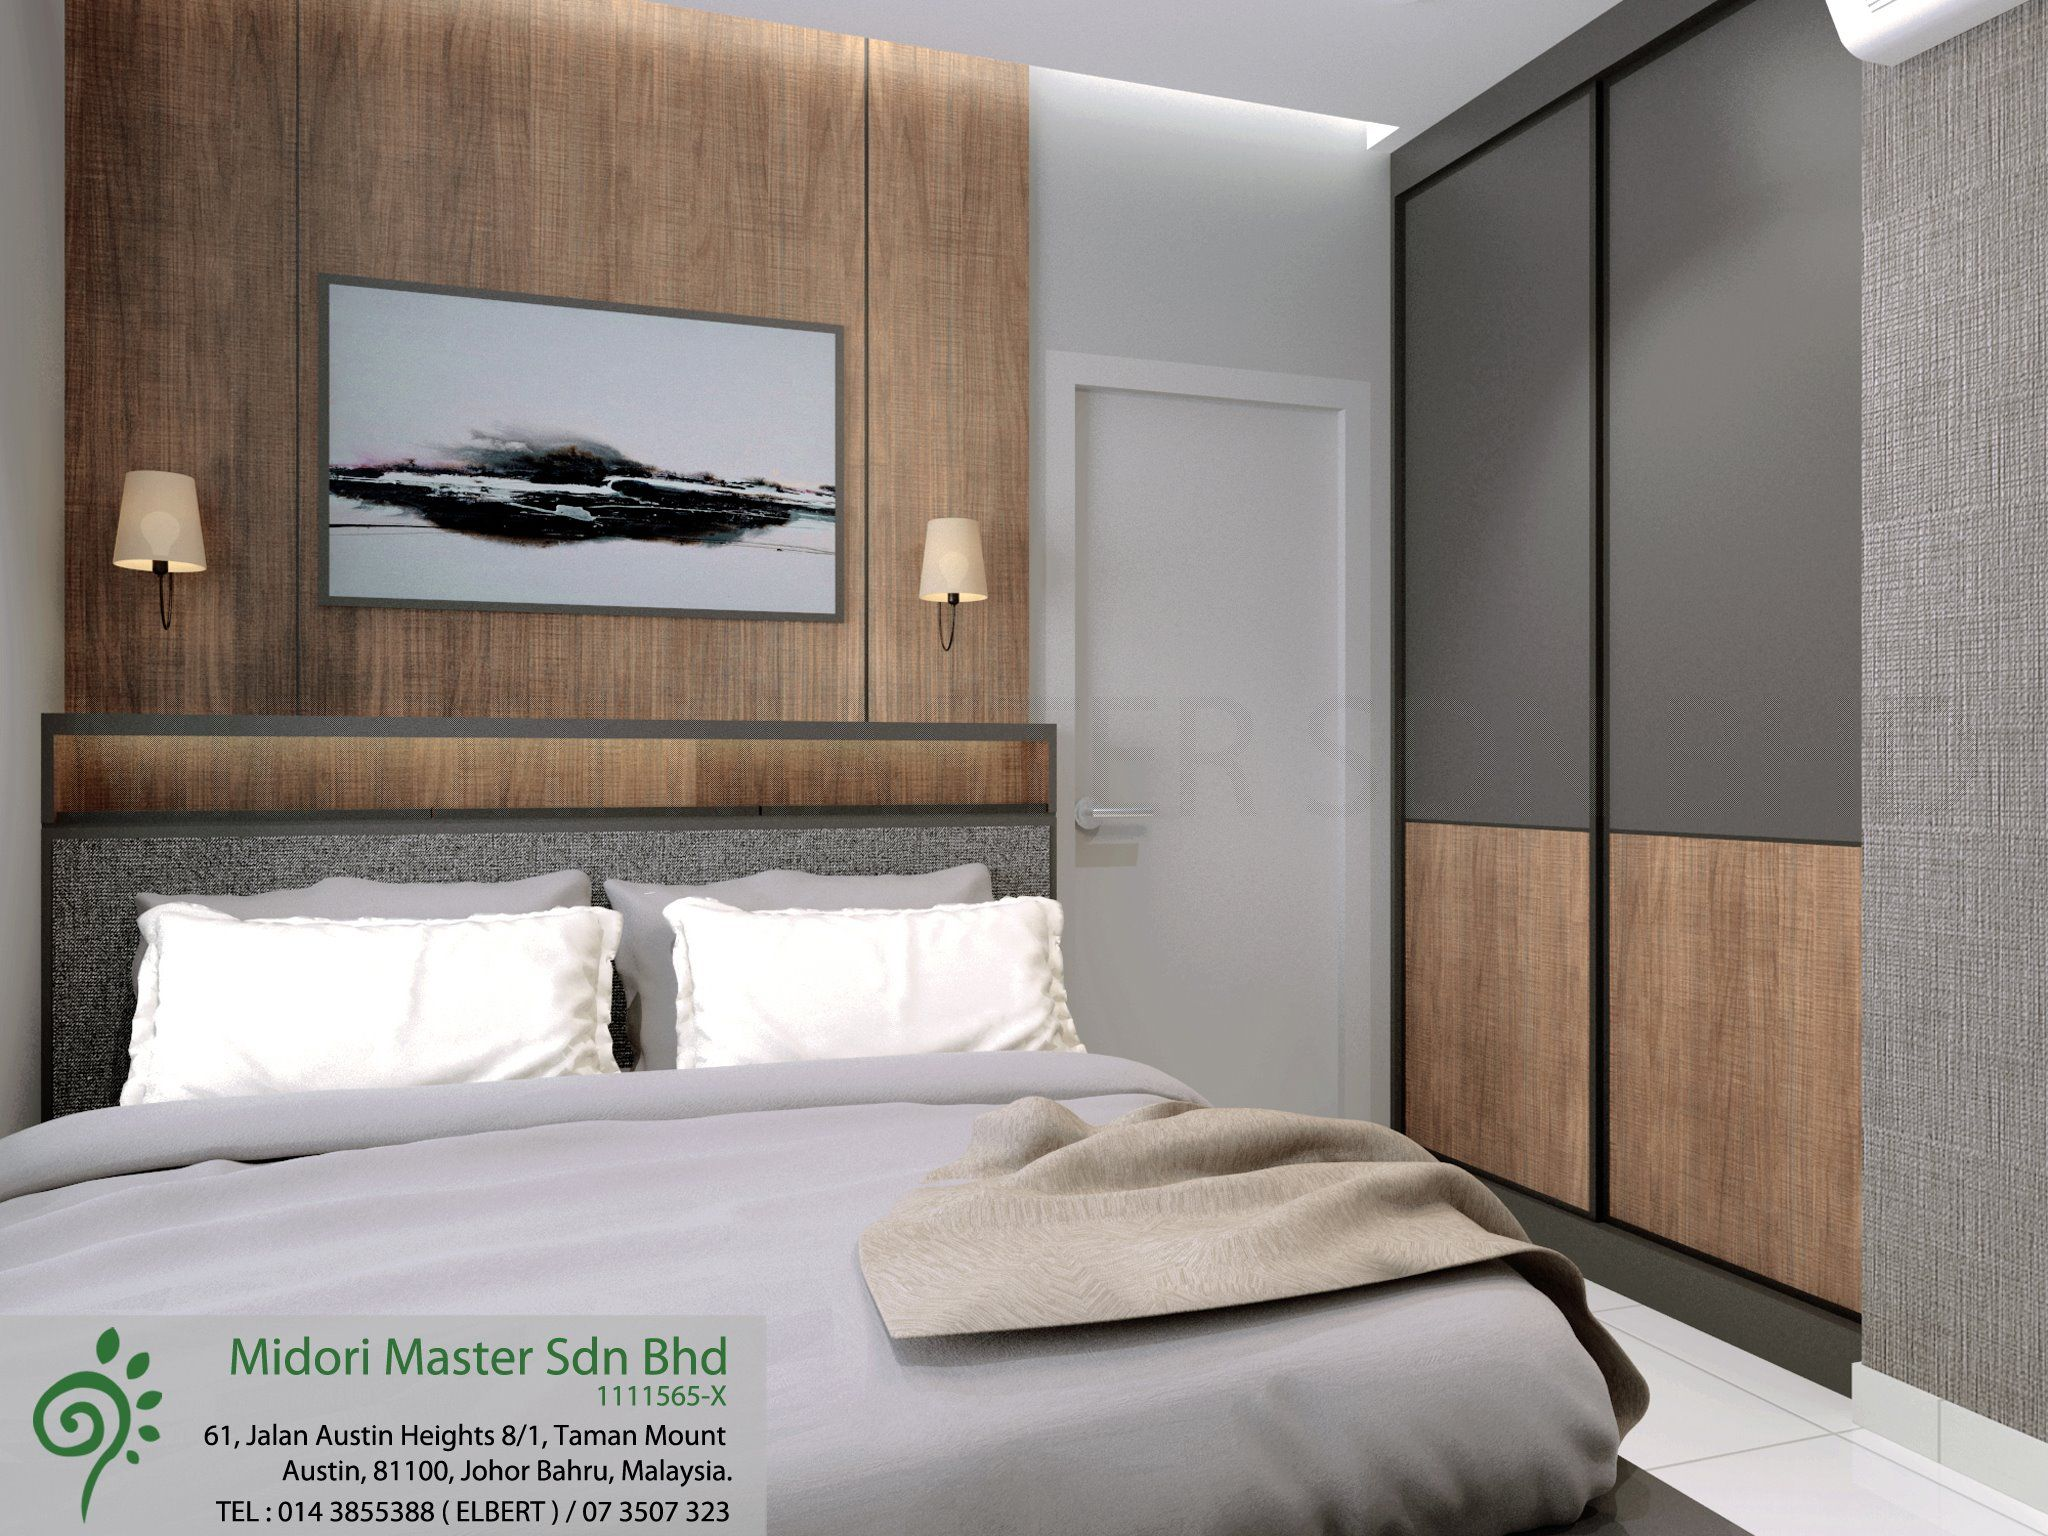 D'interieur Sdn Bhd Concept Muji Style Sky Peak Residence Apartment Designed By